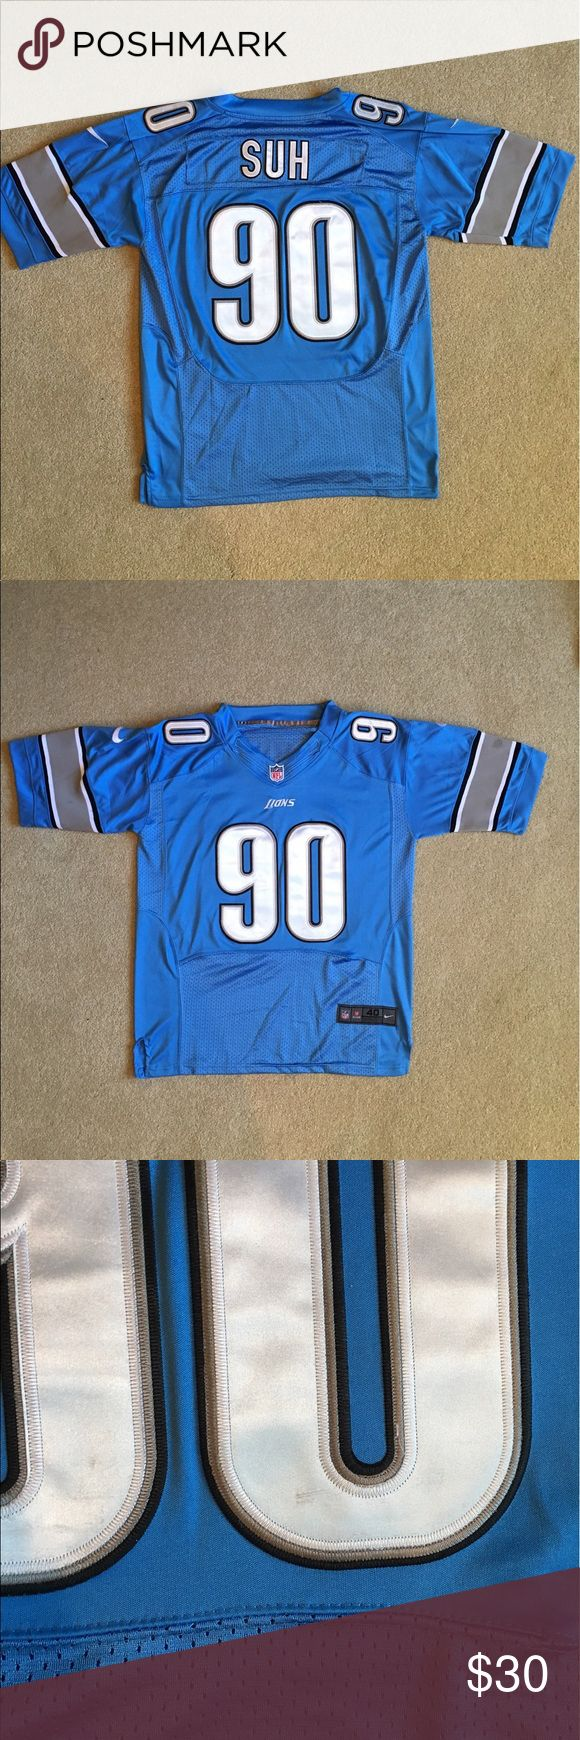 """Nike Ndamukong Suh Detroit Lions Jersey. (40) Nike Ndamukong Suh Detroit Lions Jersey. Size 40. Check measurements for an accurate fit. Couple marks throughout as pictured. Overall excellent condition! Measurements. Chest: 23.5"""" Collar Down: 23.5"""" Nike Shirts Tees - Short Sleeve"""